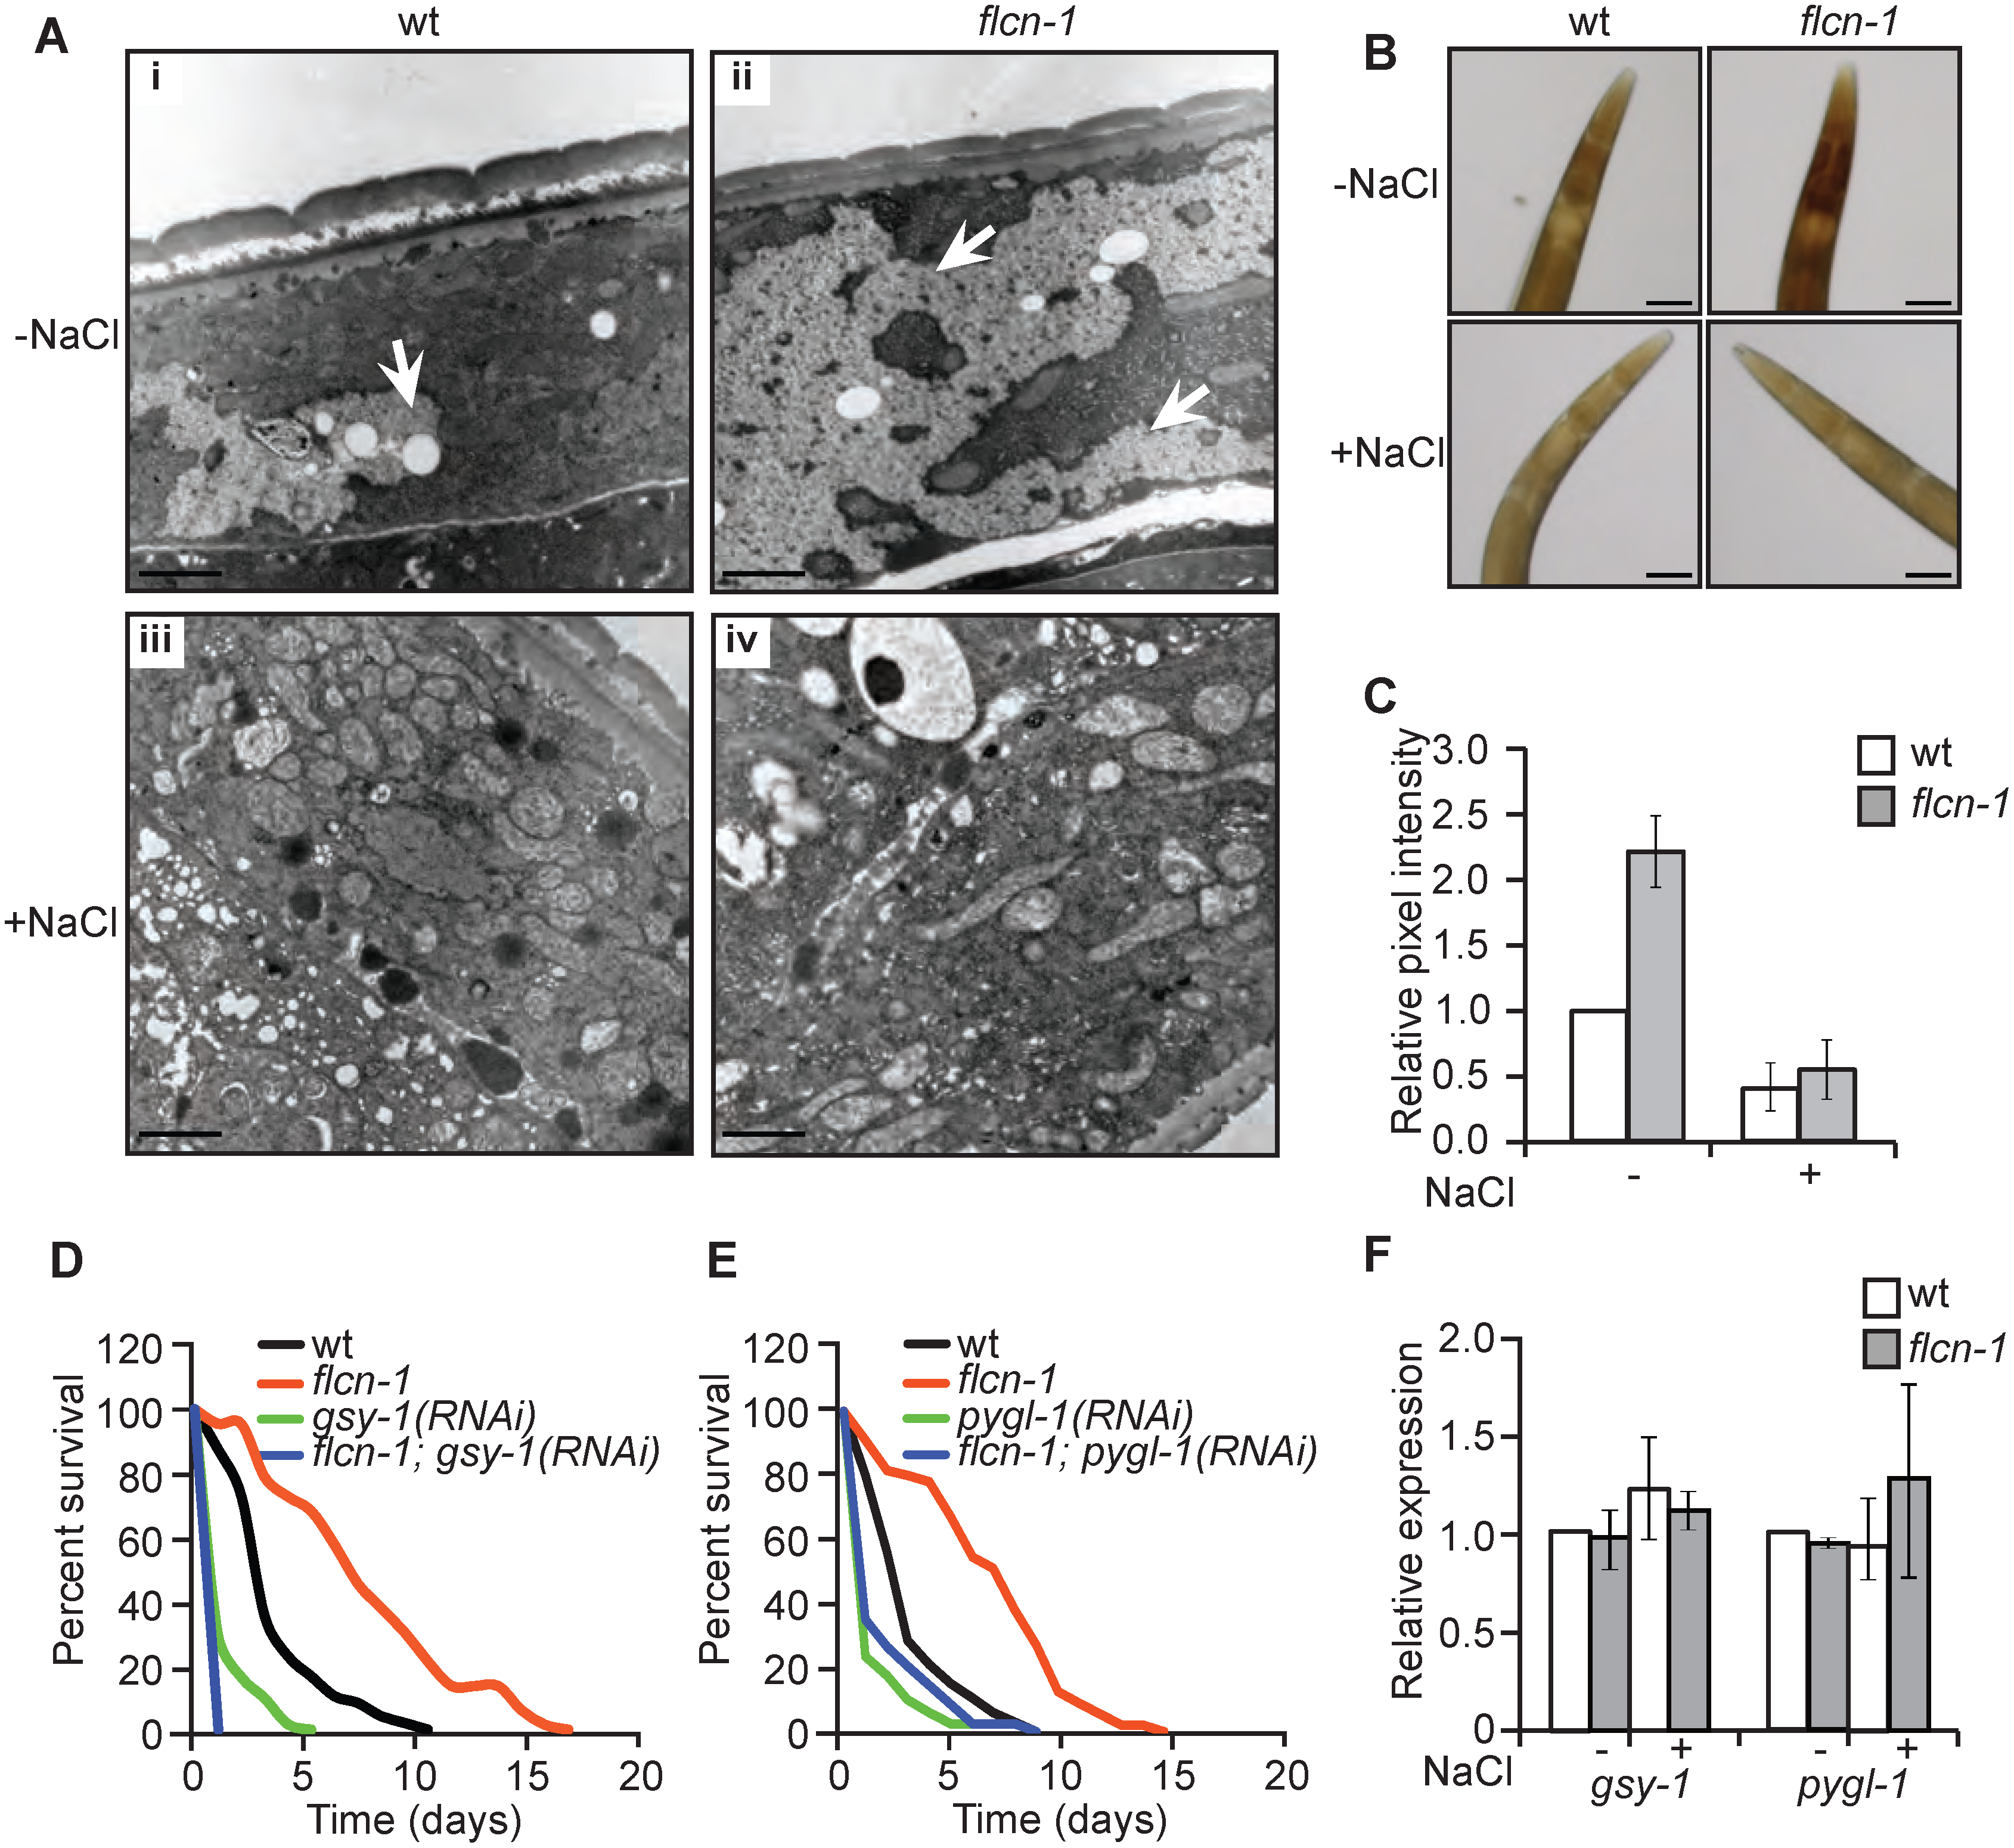 Loss of <i>flcn-1</i> increases glycogen content, which mediates resistance to hyperosmotic stress.